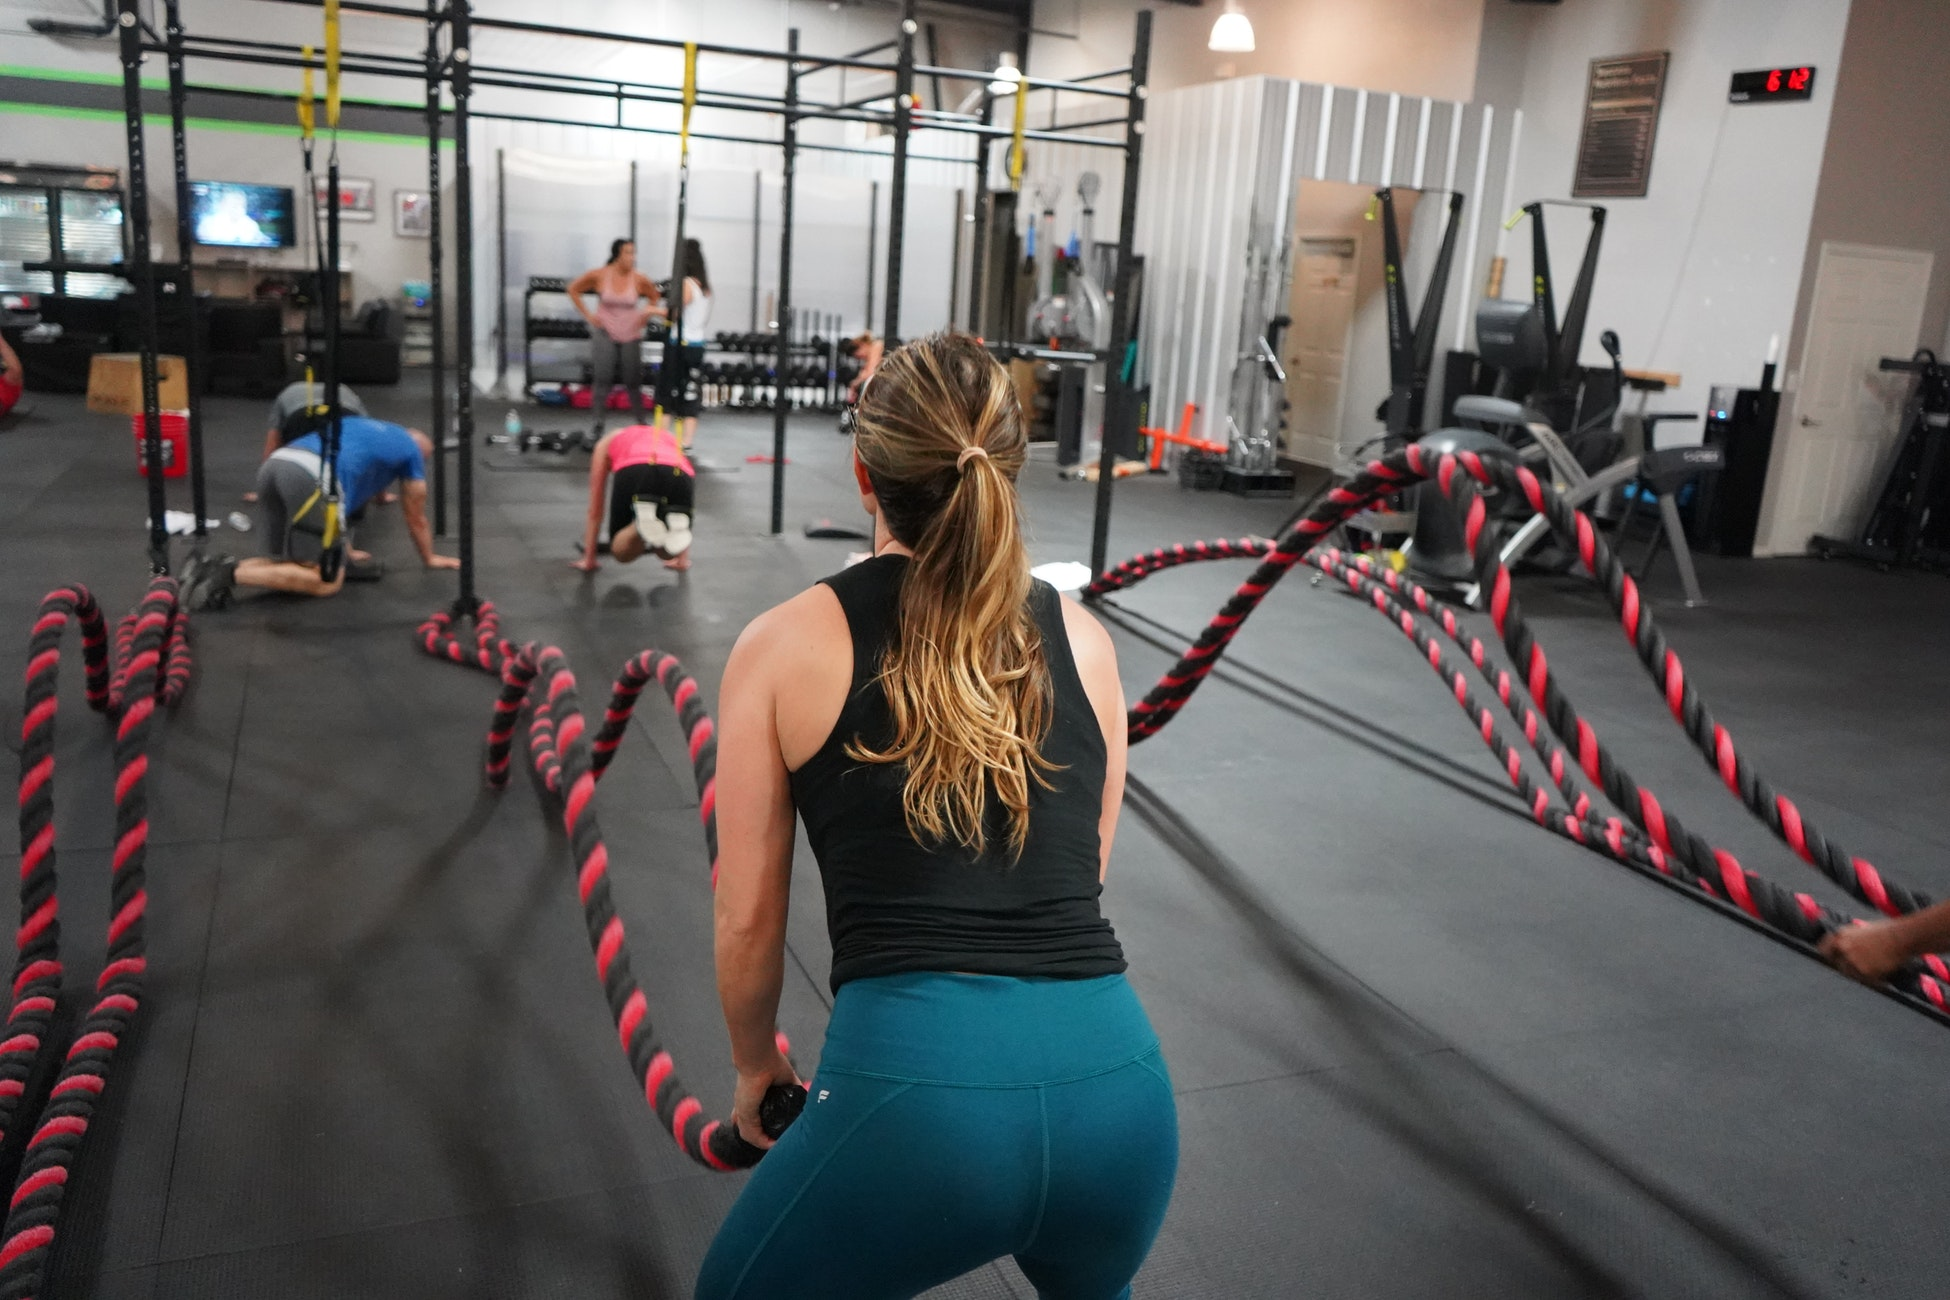 Girl trying ropes to improve her fitness level.